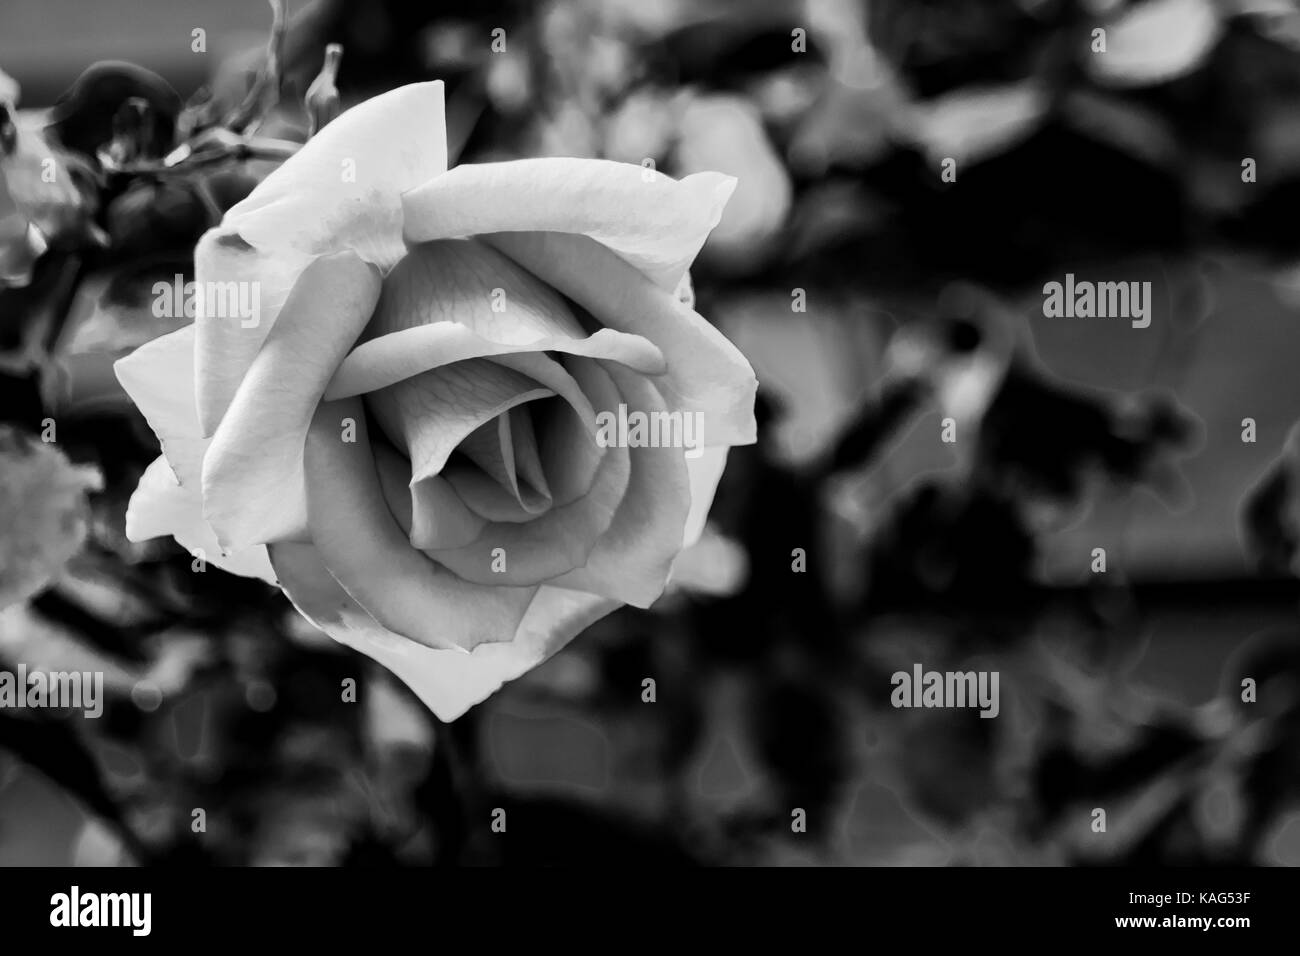 Black And White Monochrome Image Of Blooming Rose Flower Stock Photo